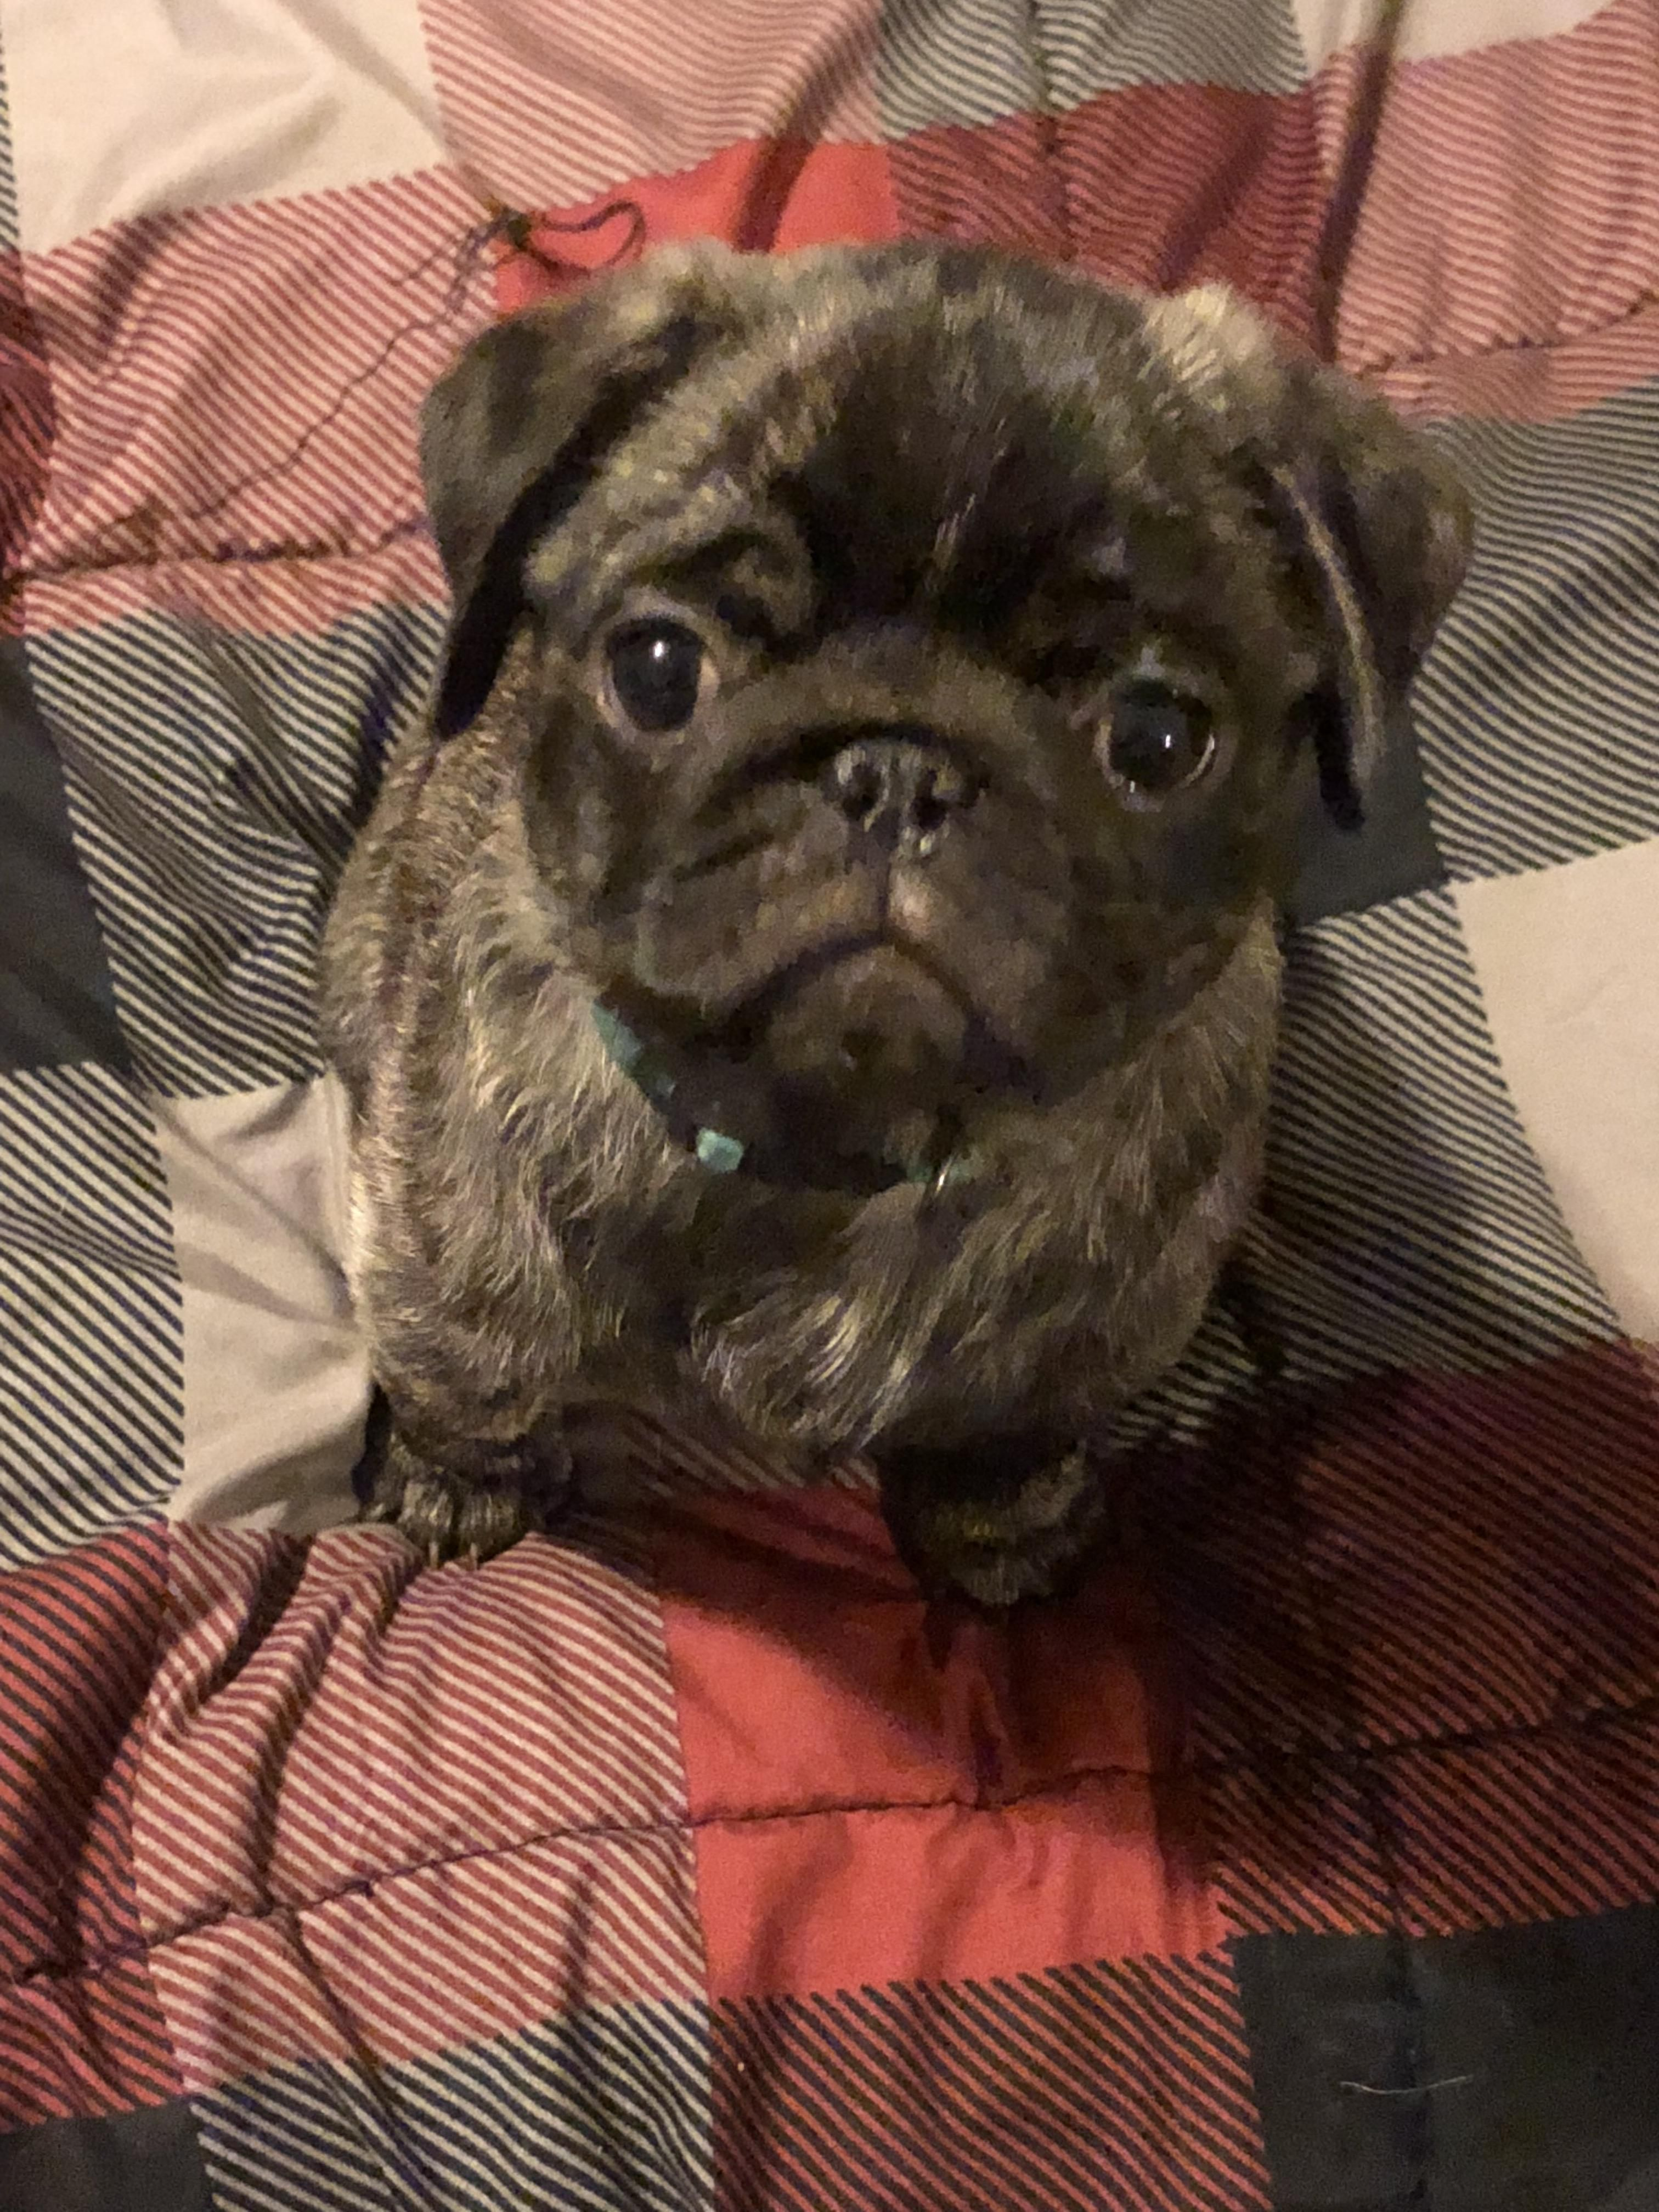 Pin By Dennis Green On Pug Funny Pugs Cute Dogs Cute Piglets